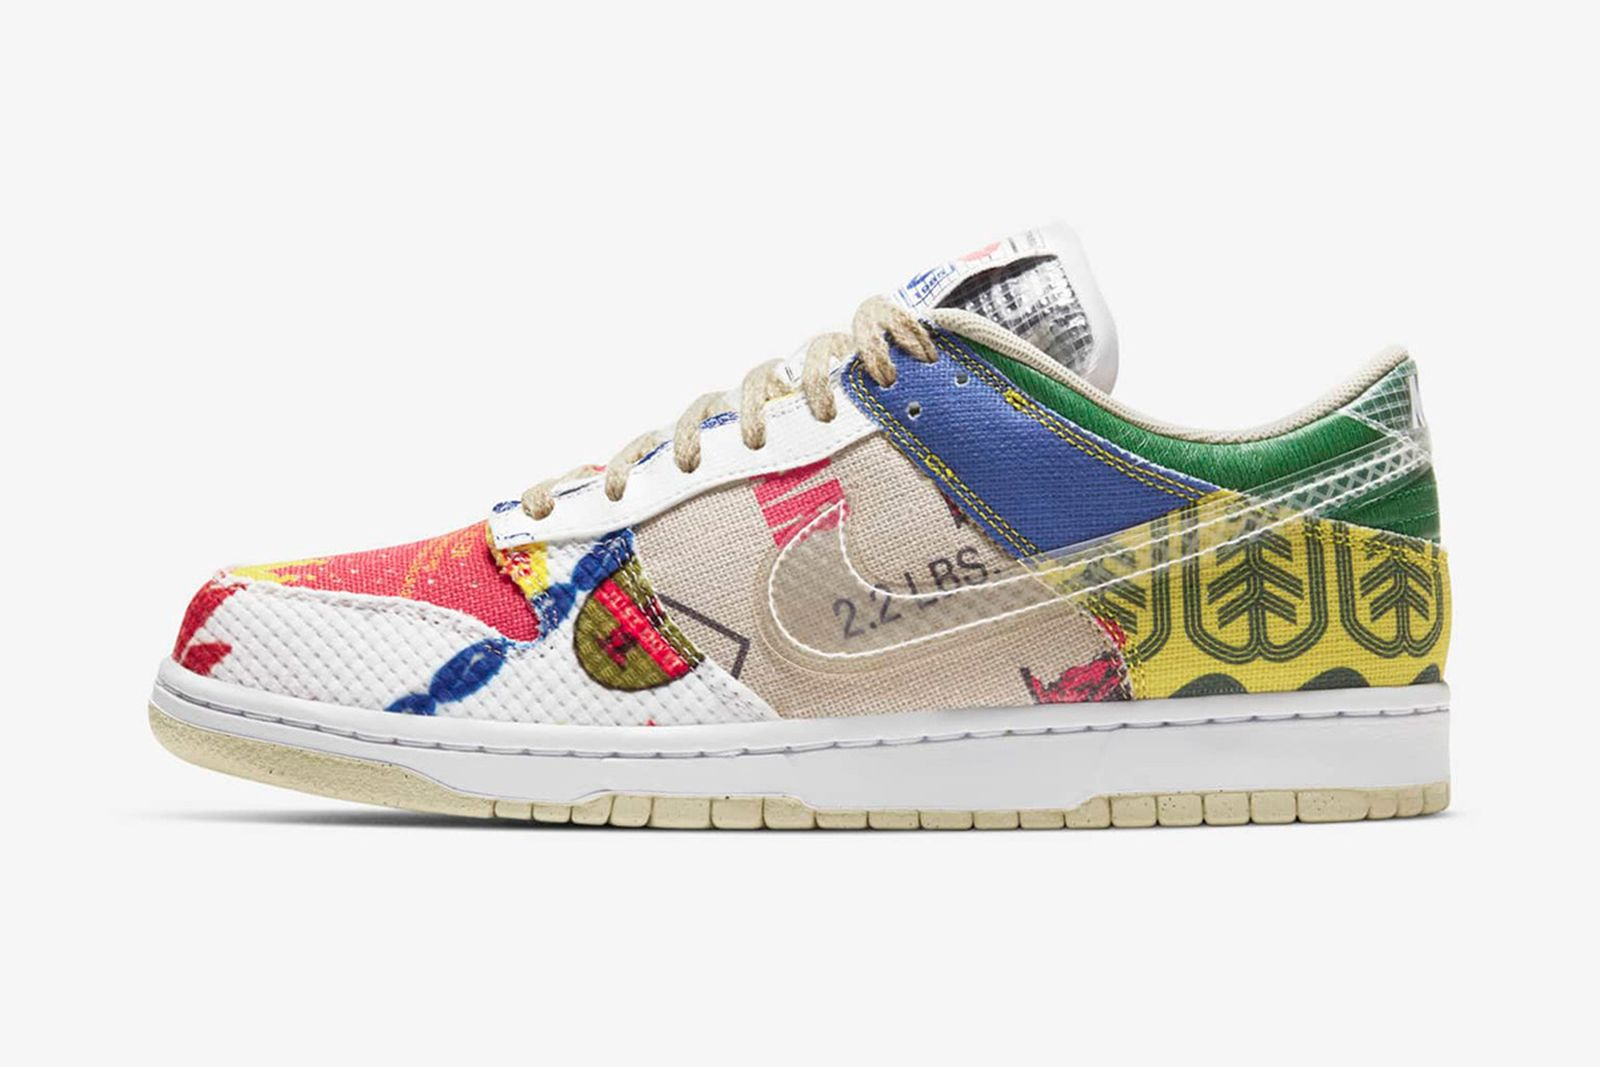 nike-dunk-low-city-market-release-date-price-07